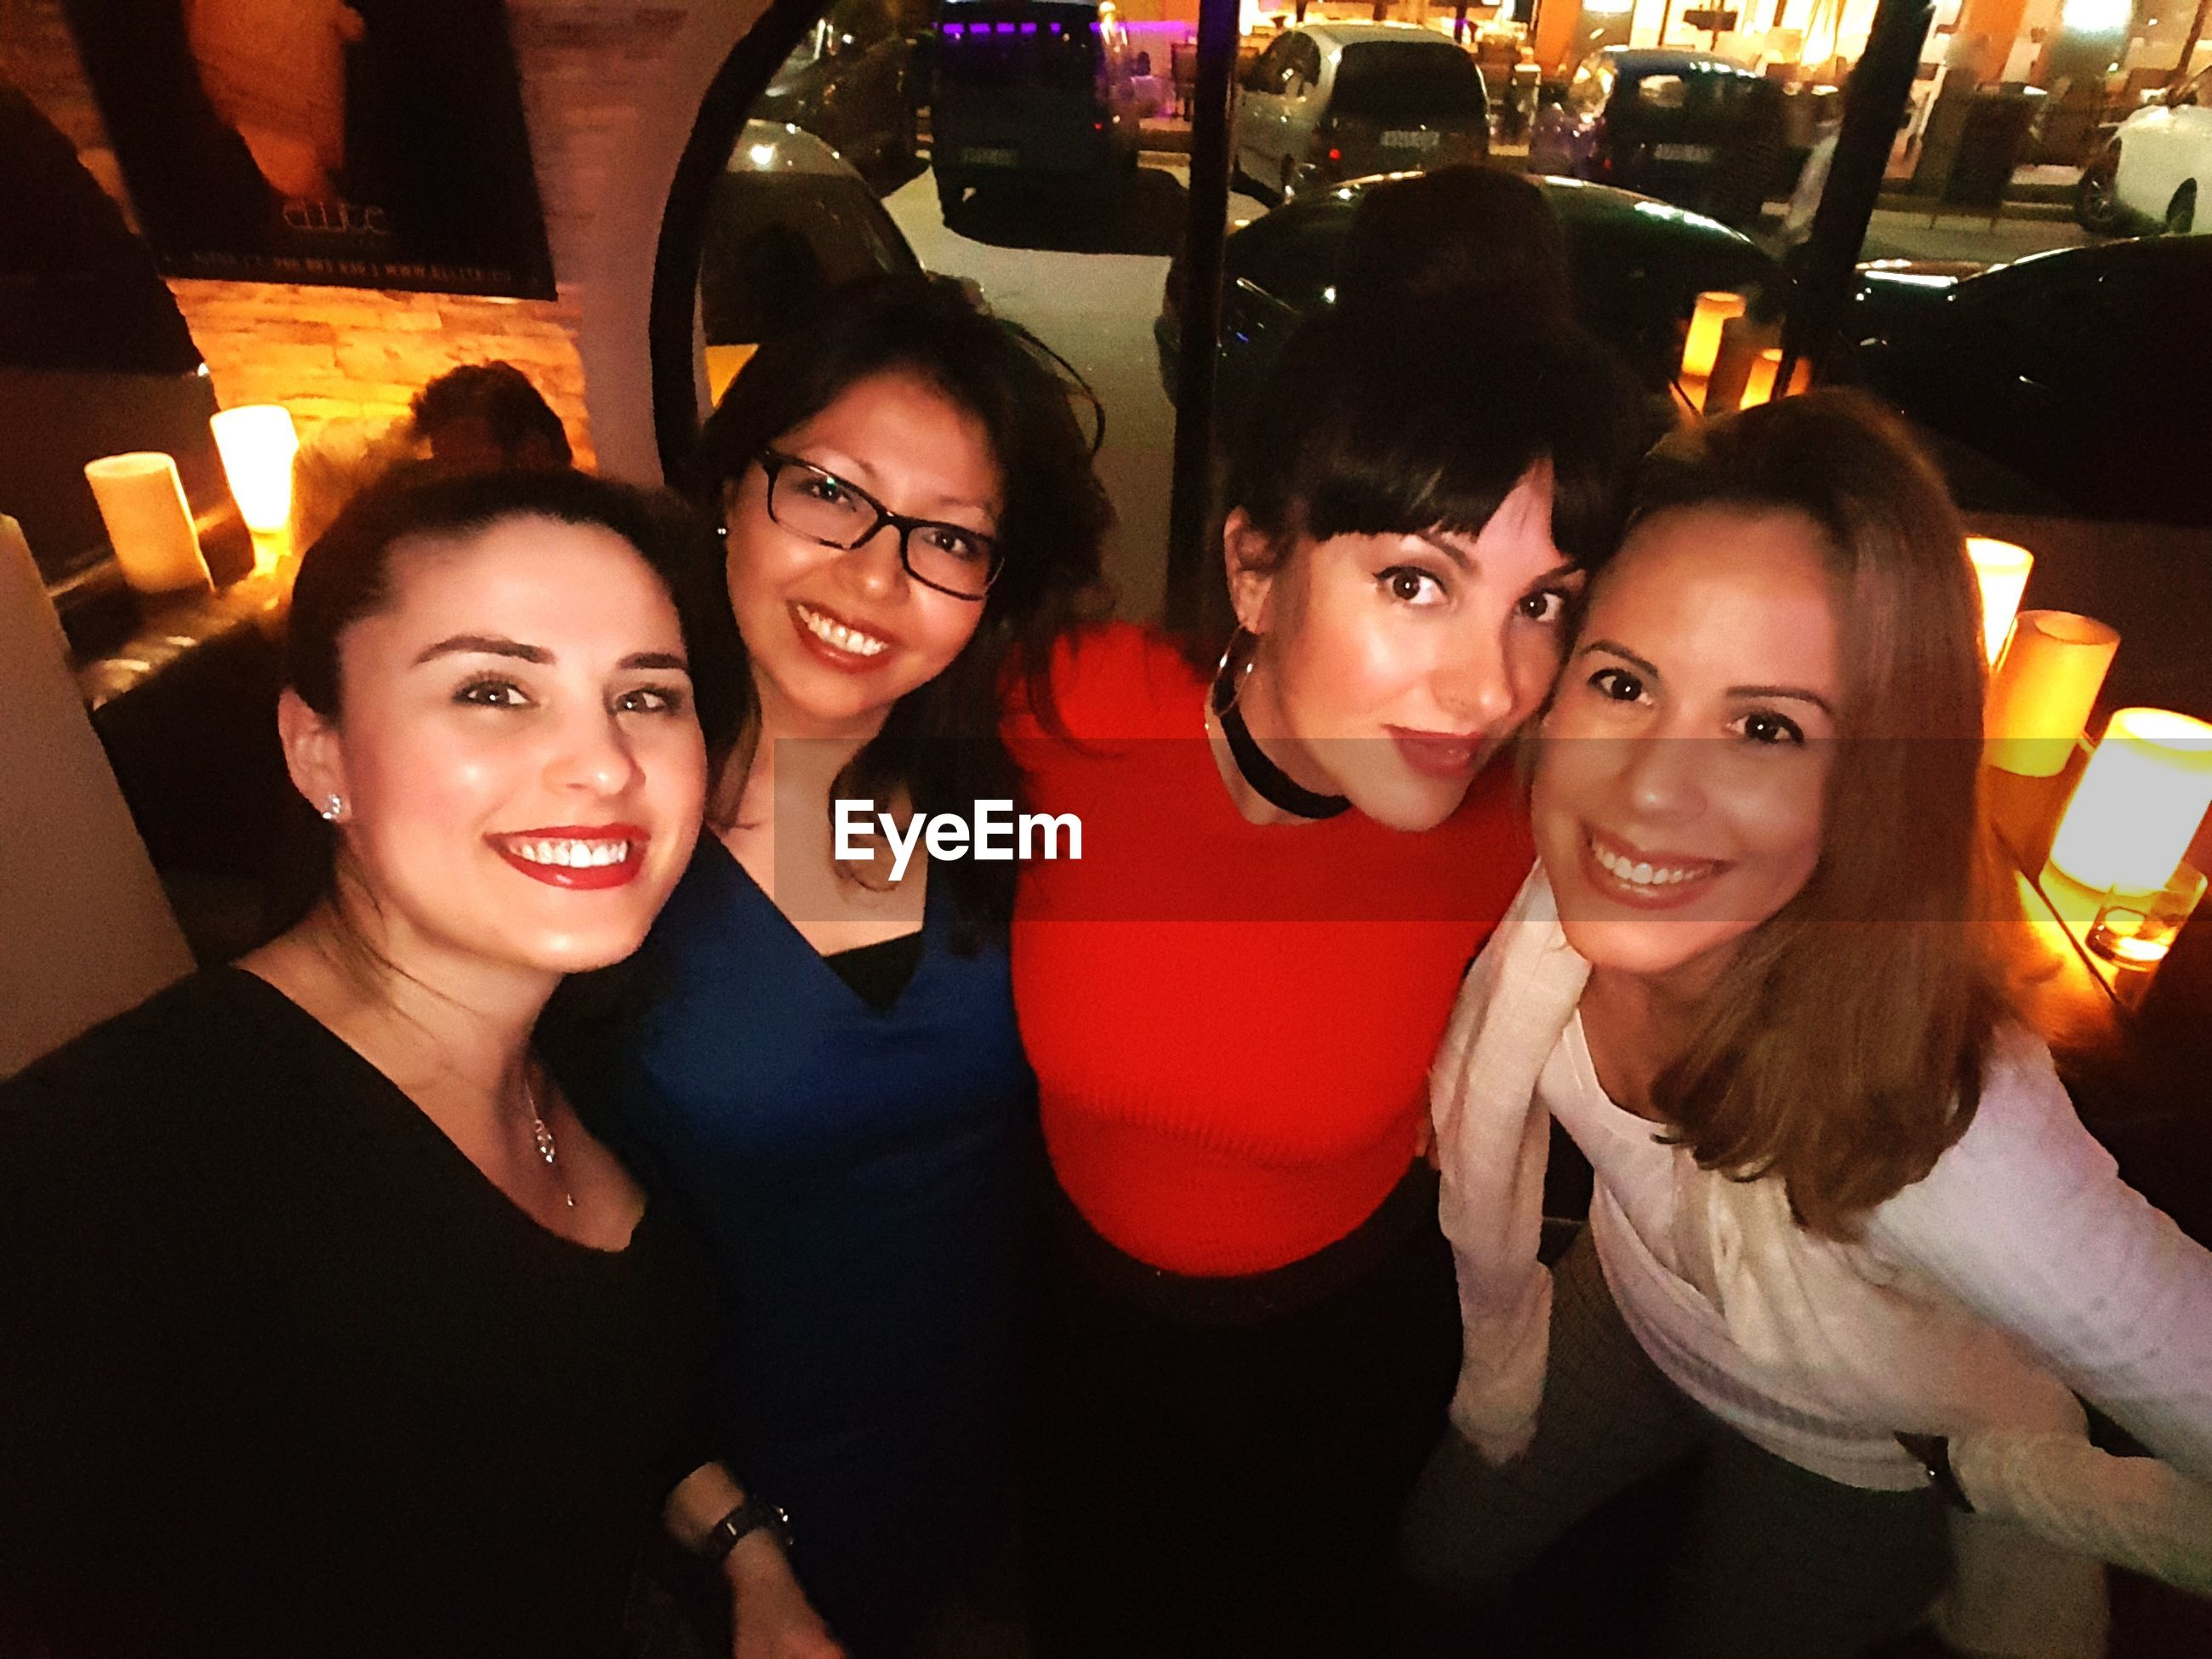 nightlife, night, smiling, portrait, travel, adults only, happiness, togetherness, toothy smile, cheerful, looking at camera, beautiful people, young women, young adult, friendship, fun, adult, enjoyment, people, women, lifestyles, communication, selfie, city, vacations, clubbing, beautiful woman, only women, indoors